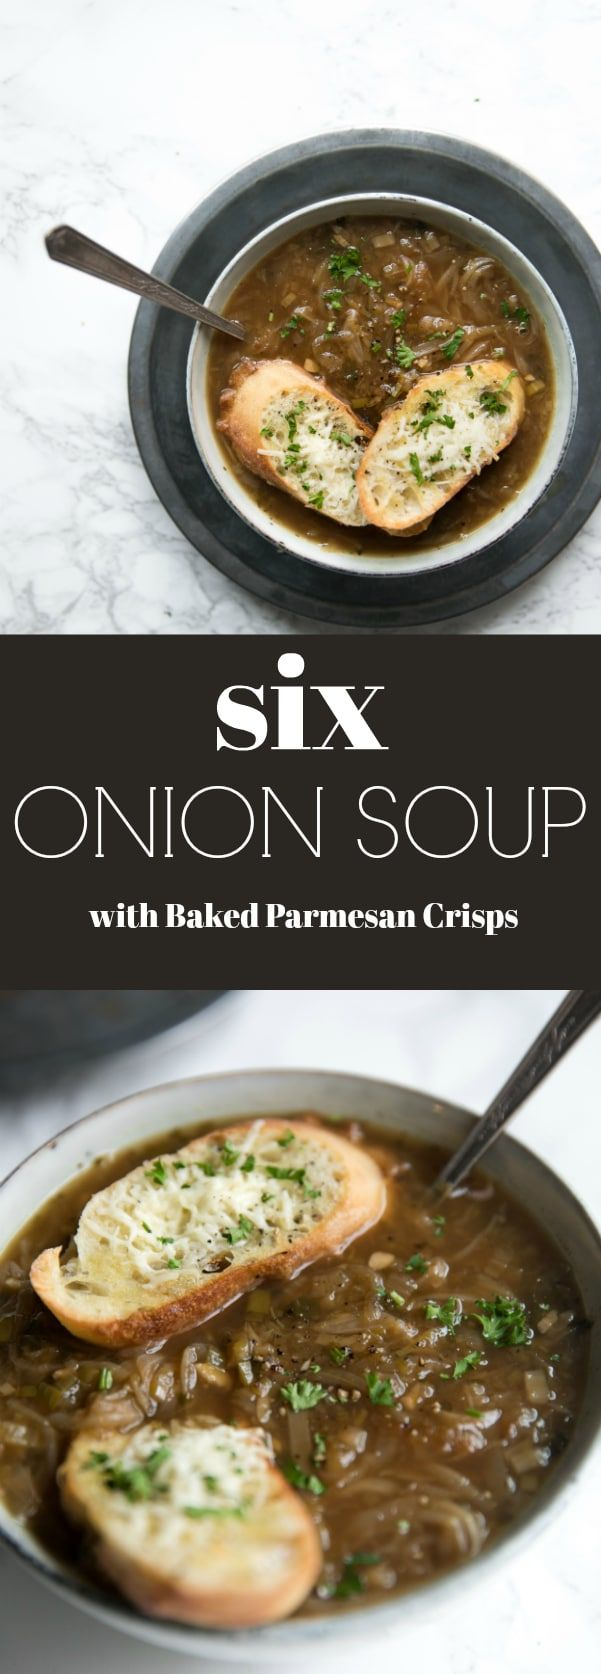 Easy 6 Onion Soup with Baked Parmesan Crisps Six kinds of onions cook together to make this comforting fragrant and delicious winter soup Topped with baked Parmesan crisp...